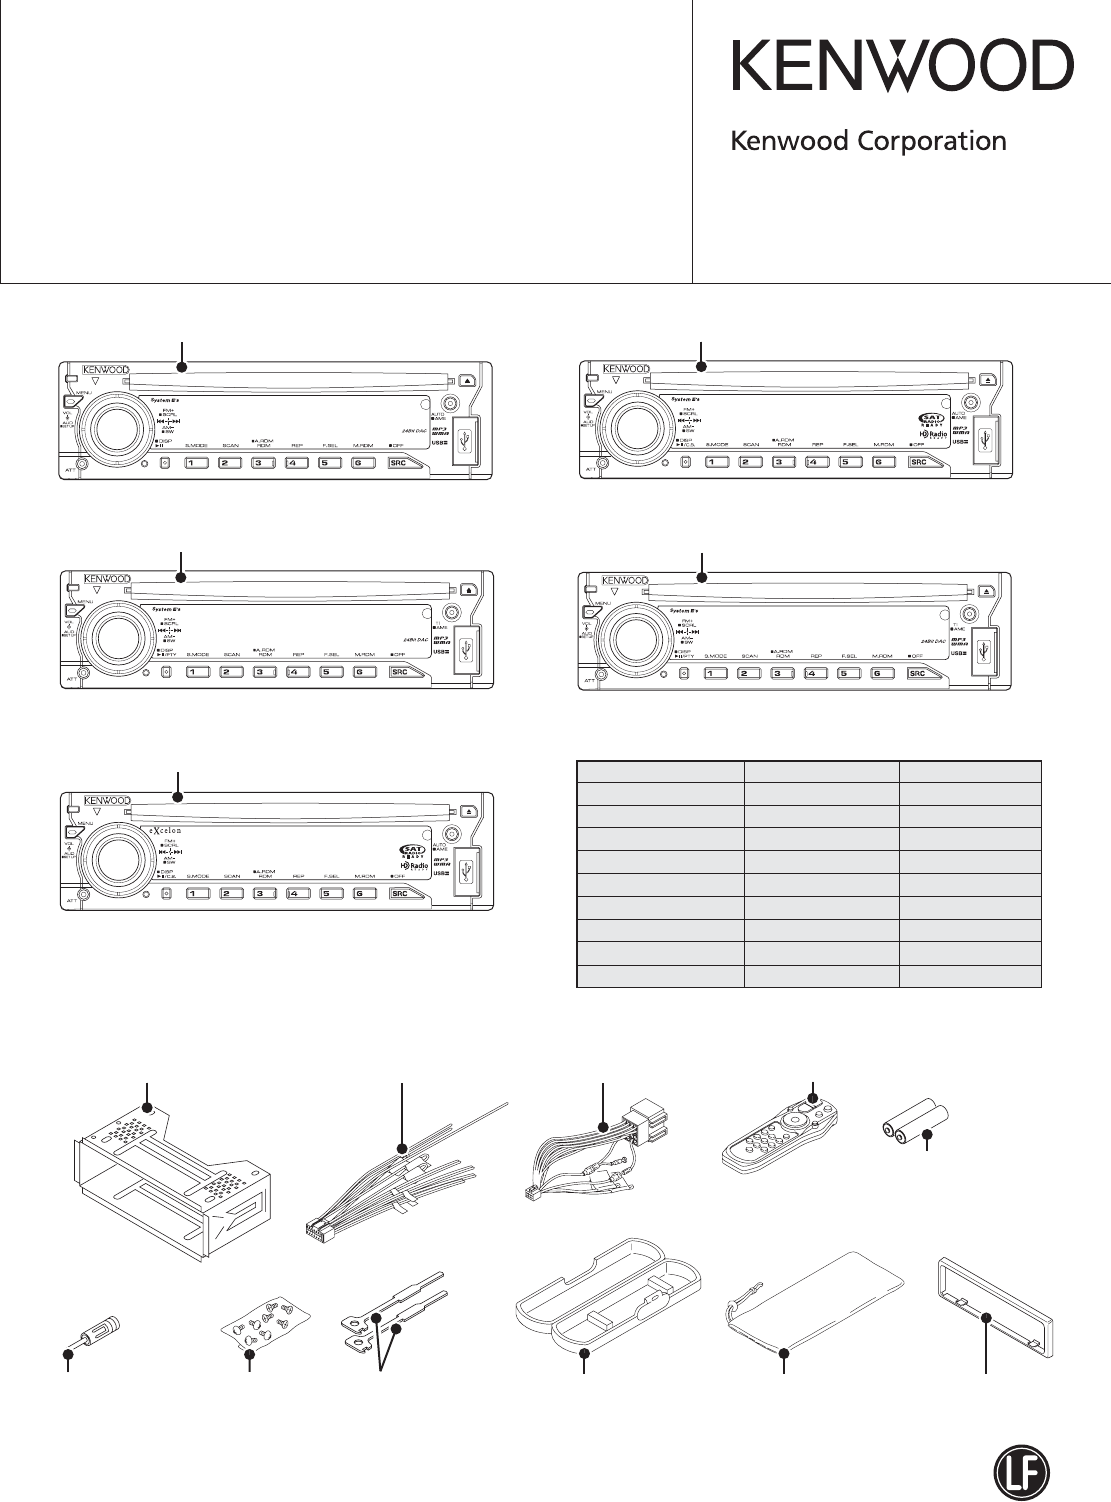 Kdc Kenwood Model 122 Color Wiring Diagram This Product Uses Lead Free Solder